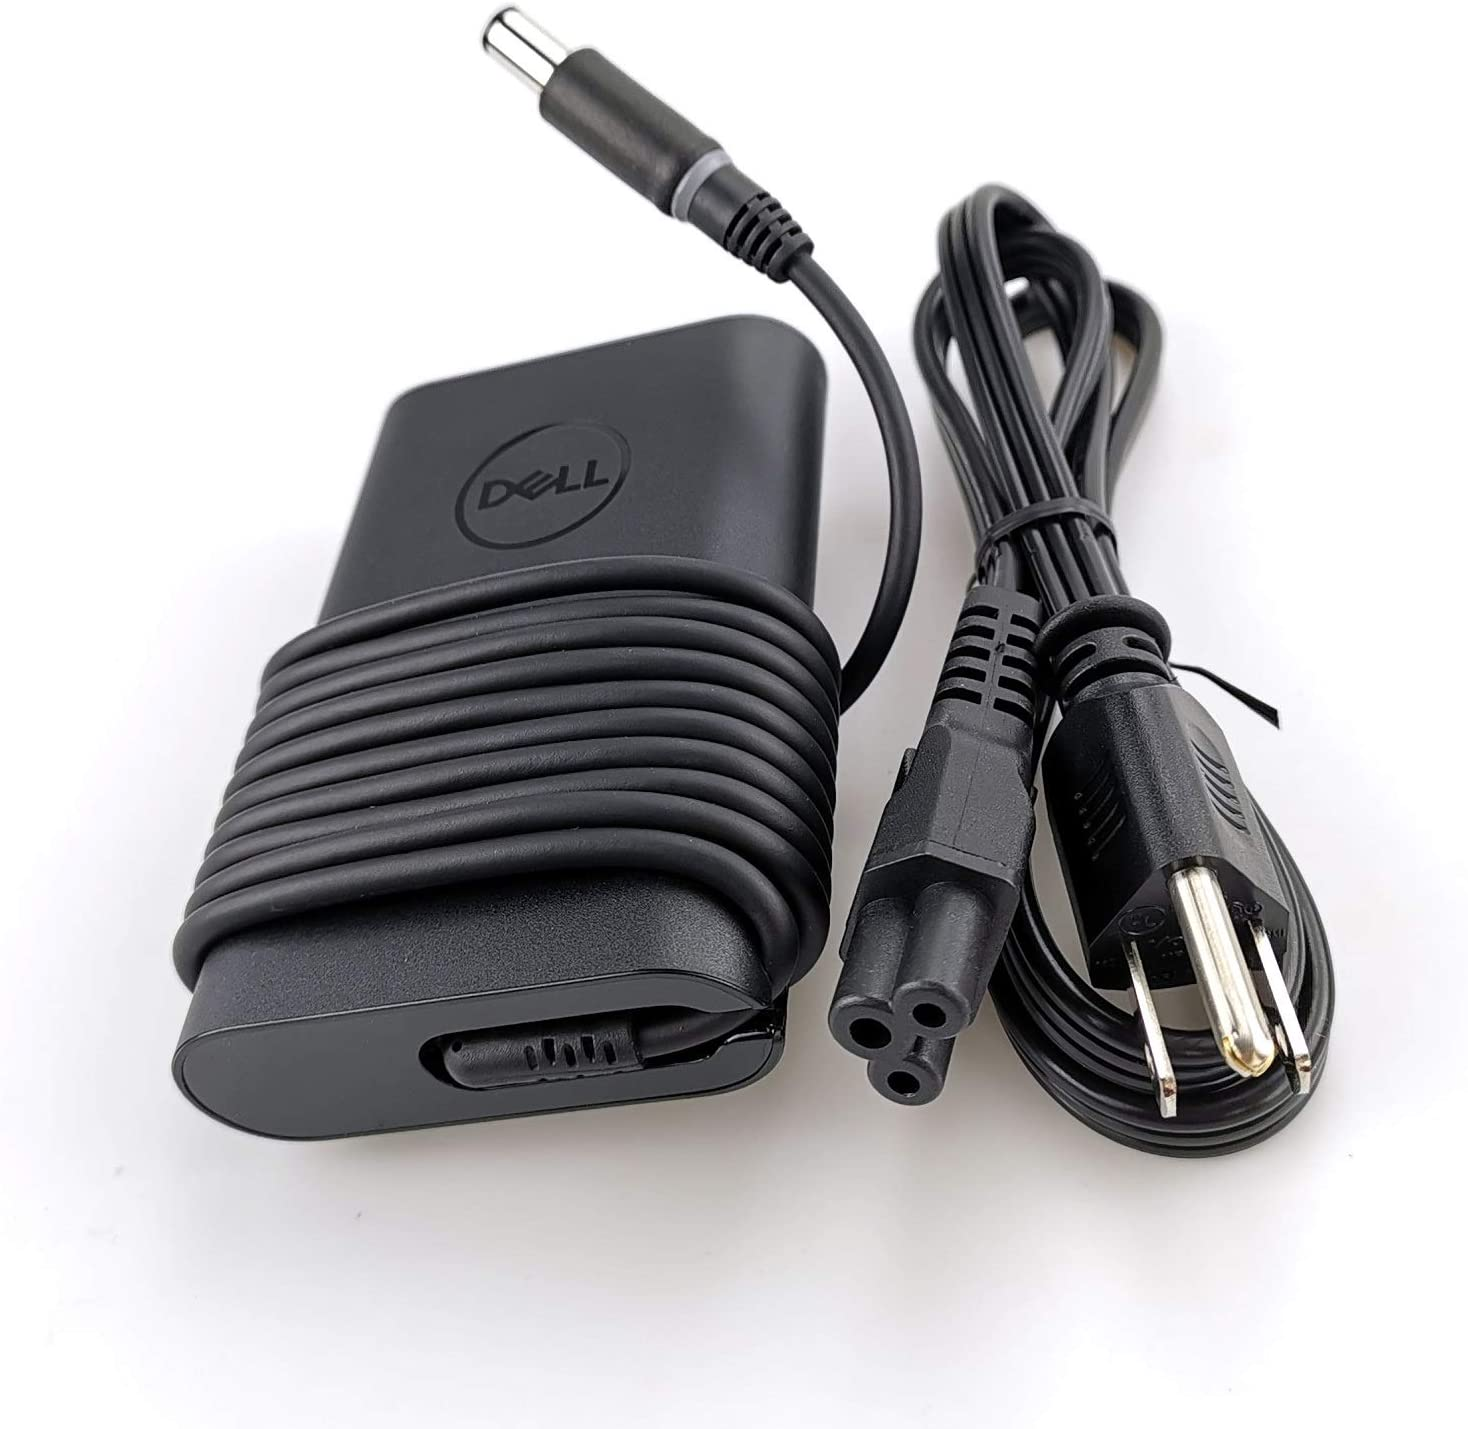 Dell Laptop Charger 65W watt Replacement AC Power Adapter,Power Supply for Dell Latitude E5470 7480 7490 E7450 E7250 3300 3380 5280 5290 5480 5490,HA65NM130